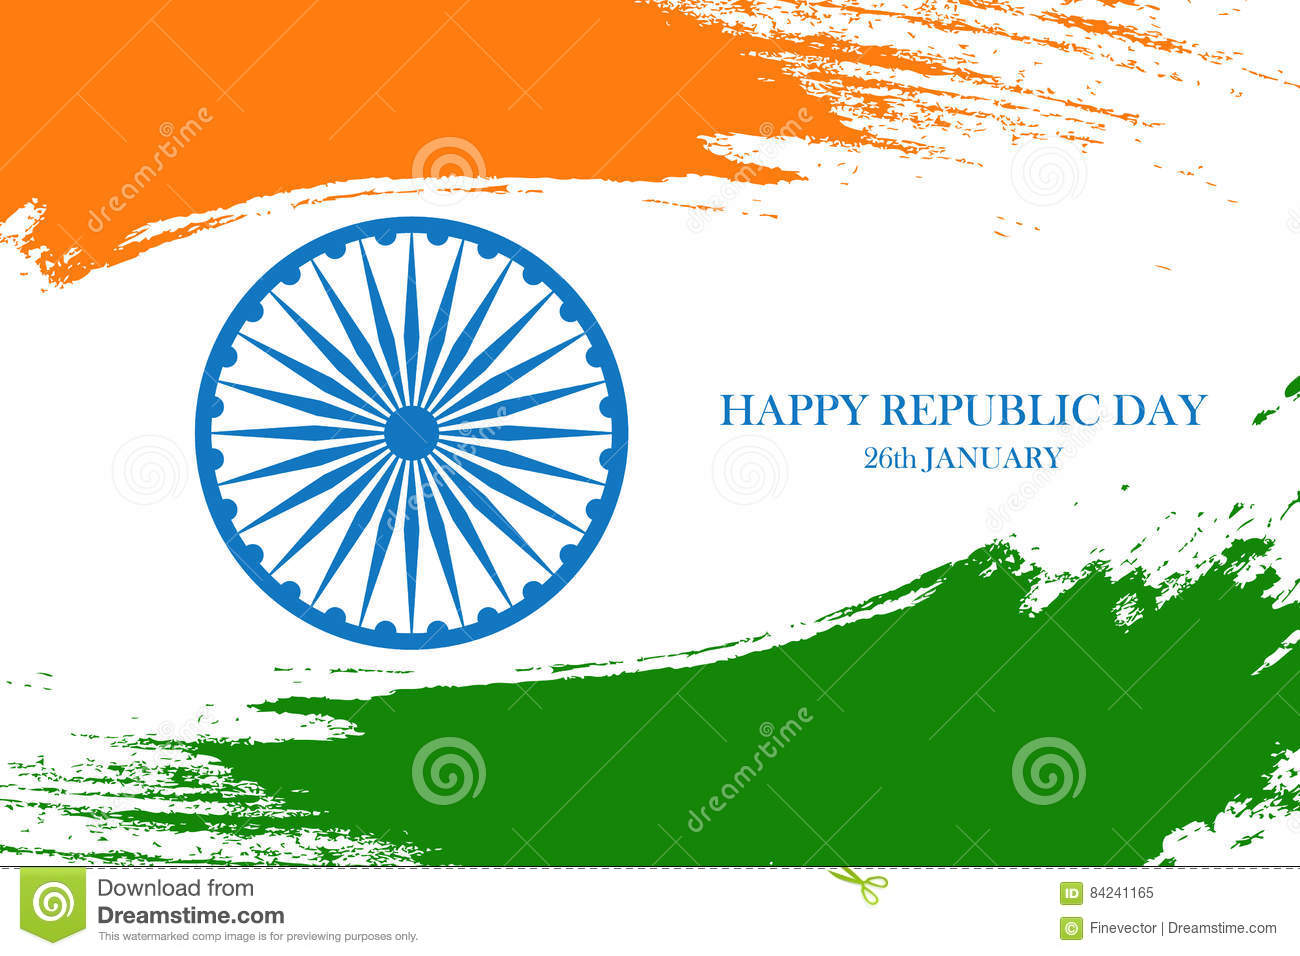 Indian happy republic day greeting card with ashoka wheel and brush download indian happy republic day greeting card with ashoka wheel and brush strokes in indian national m4hsunfo